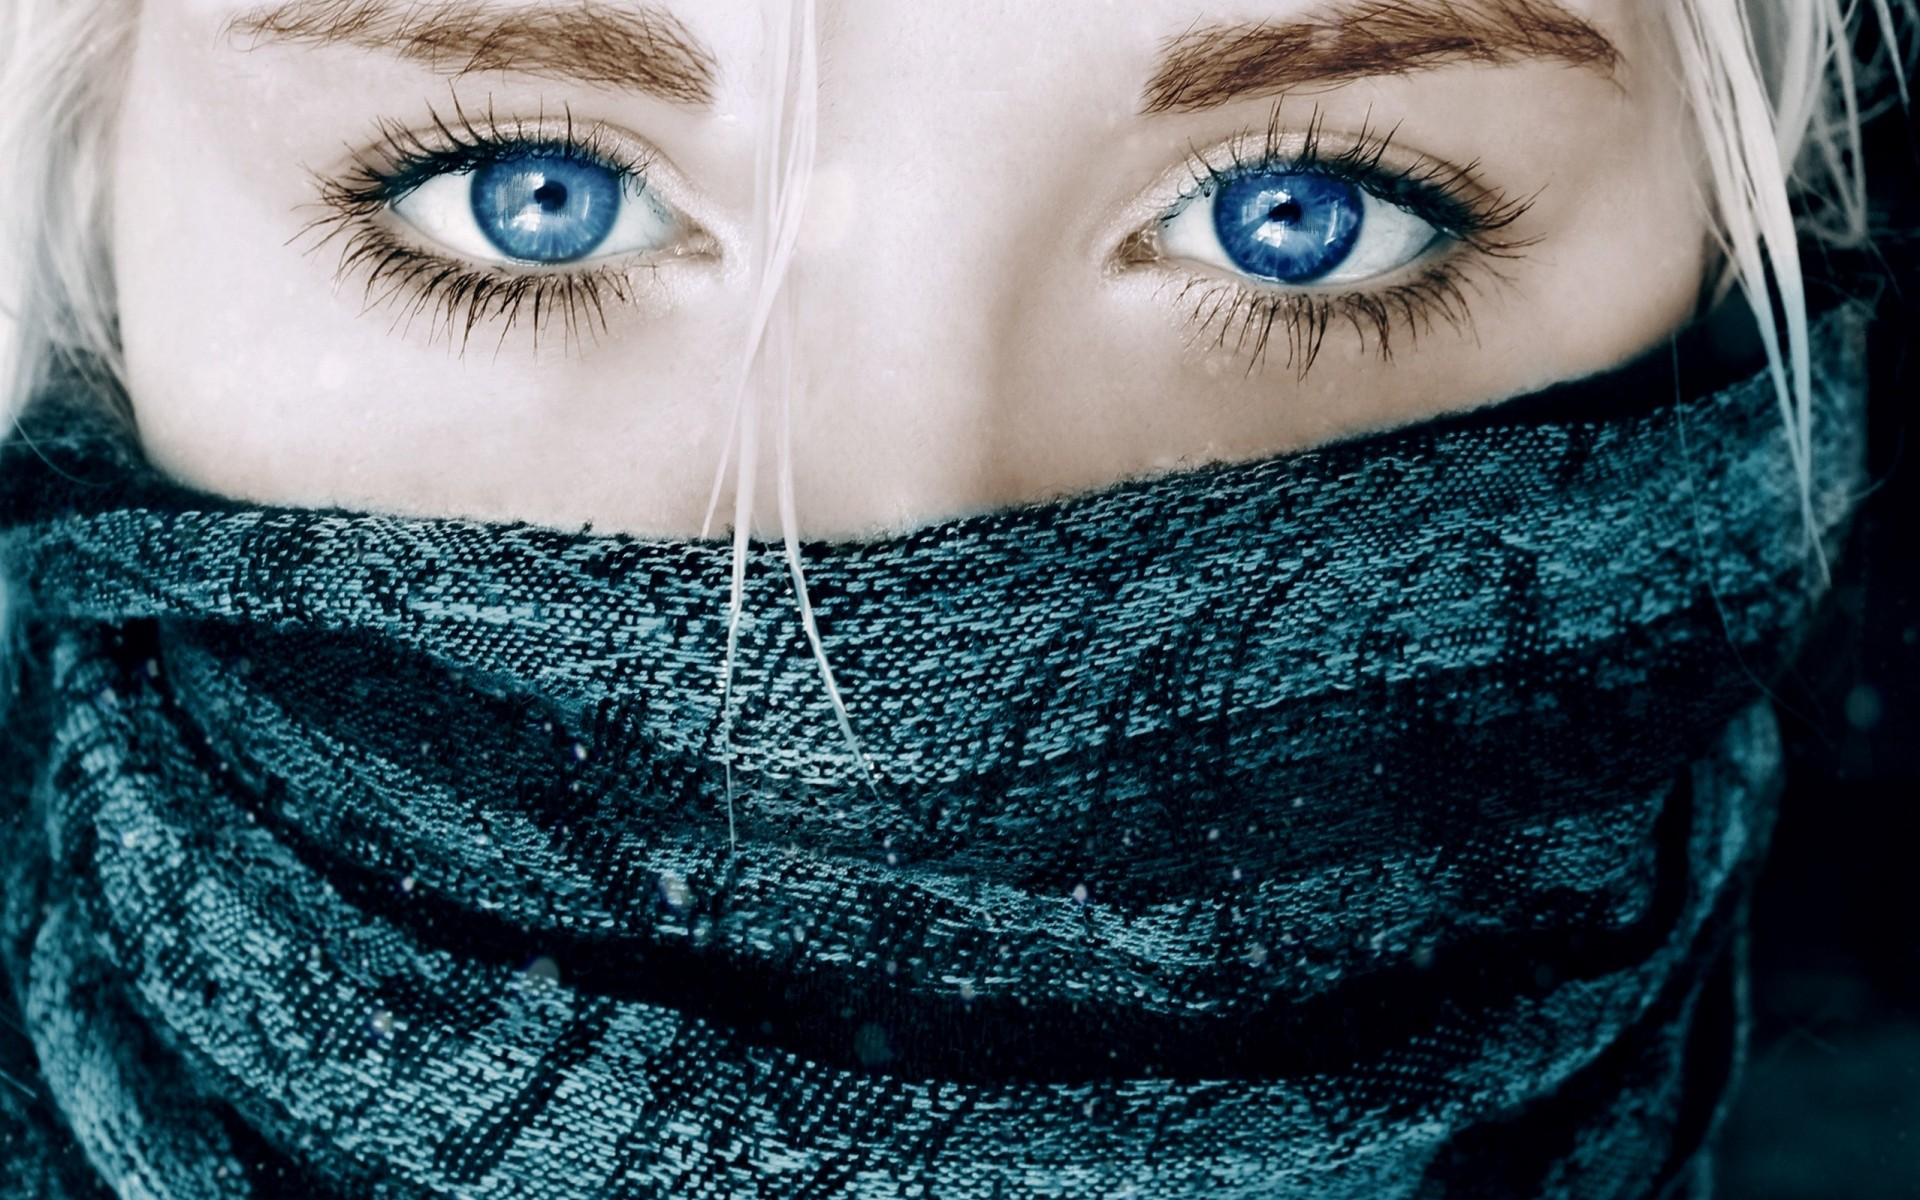 blonde girl with blue eyes wallpapers 1920x1200 570136